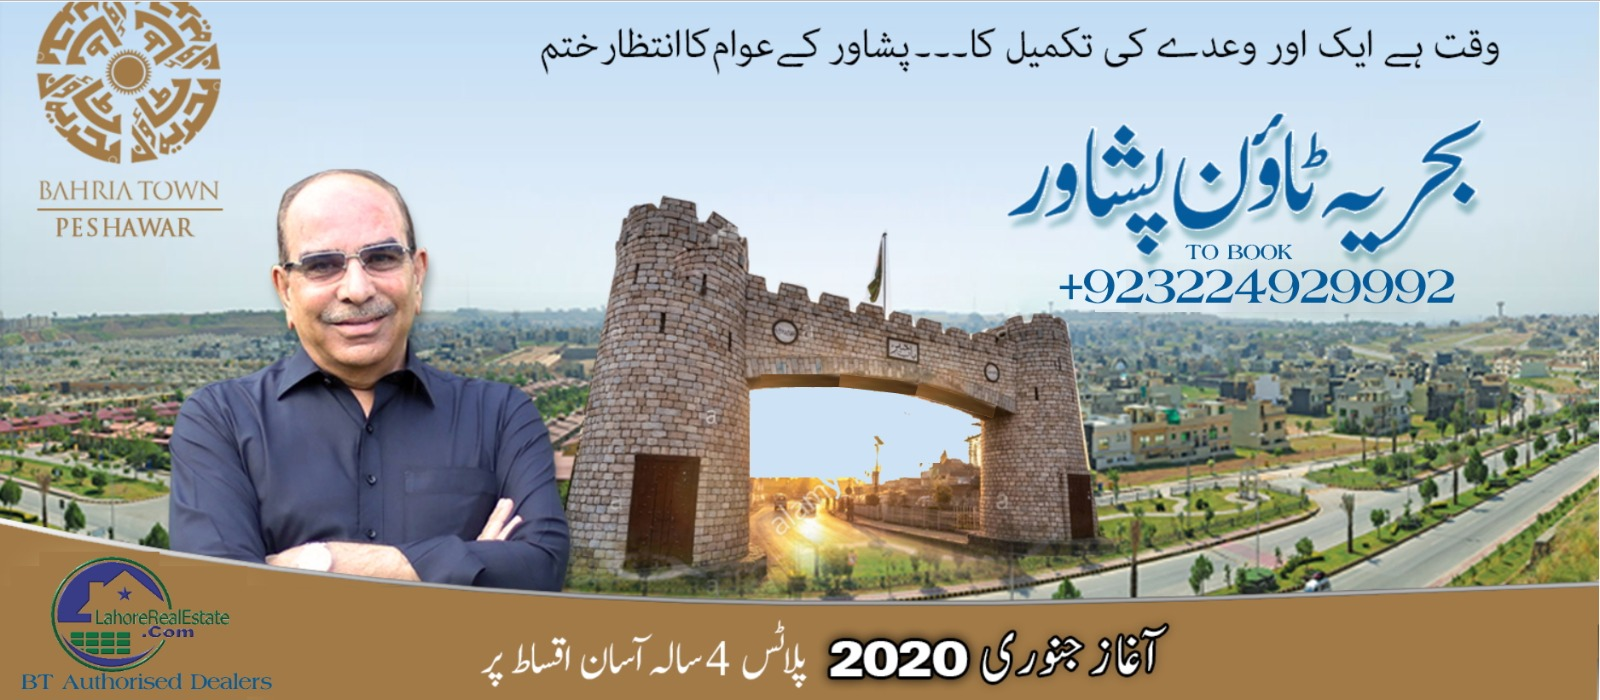 Bahria Town Peshawar Booking Launched Soon Payment Plan Plot Prices  Location Map – Lahore Real Estate ®